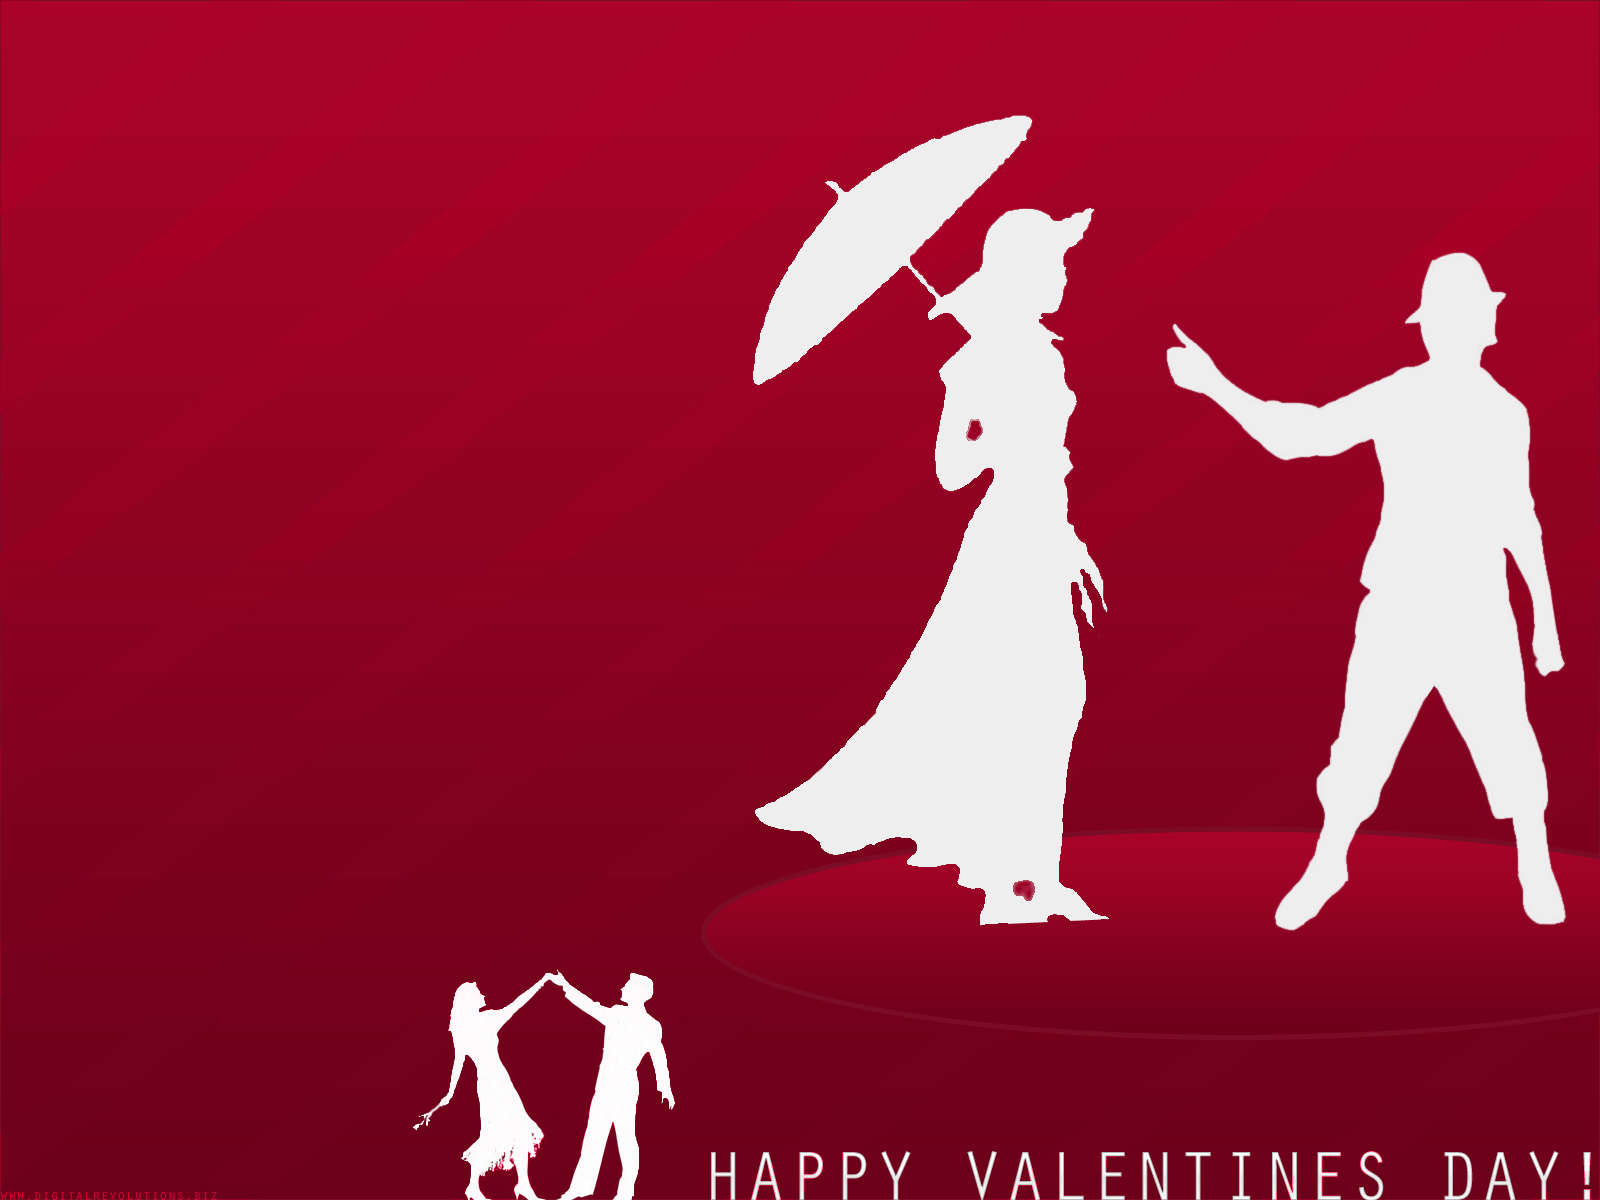 Valentine Day Wallpapers latestsmsin 1600x1200